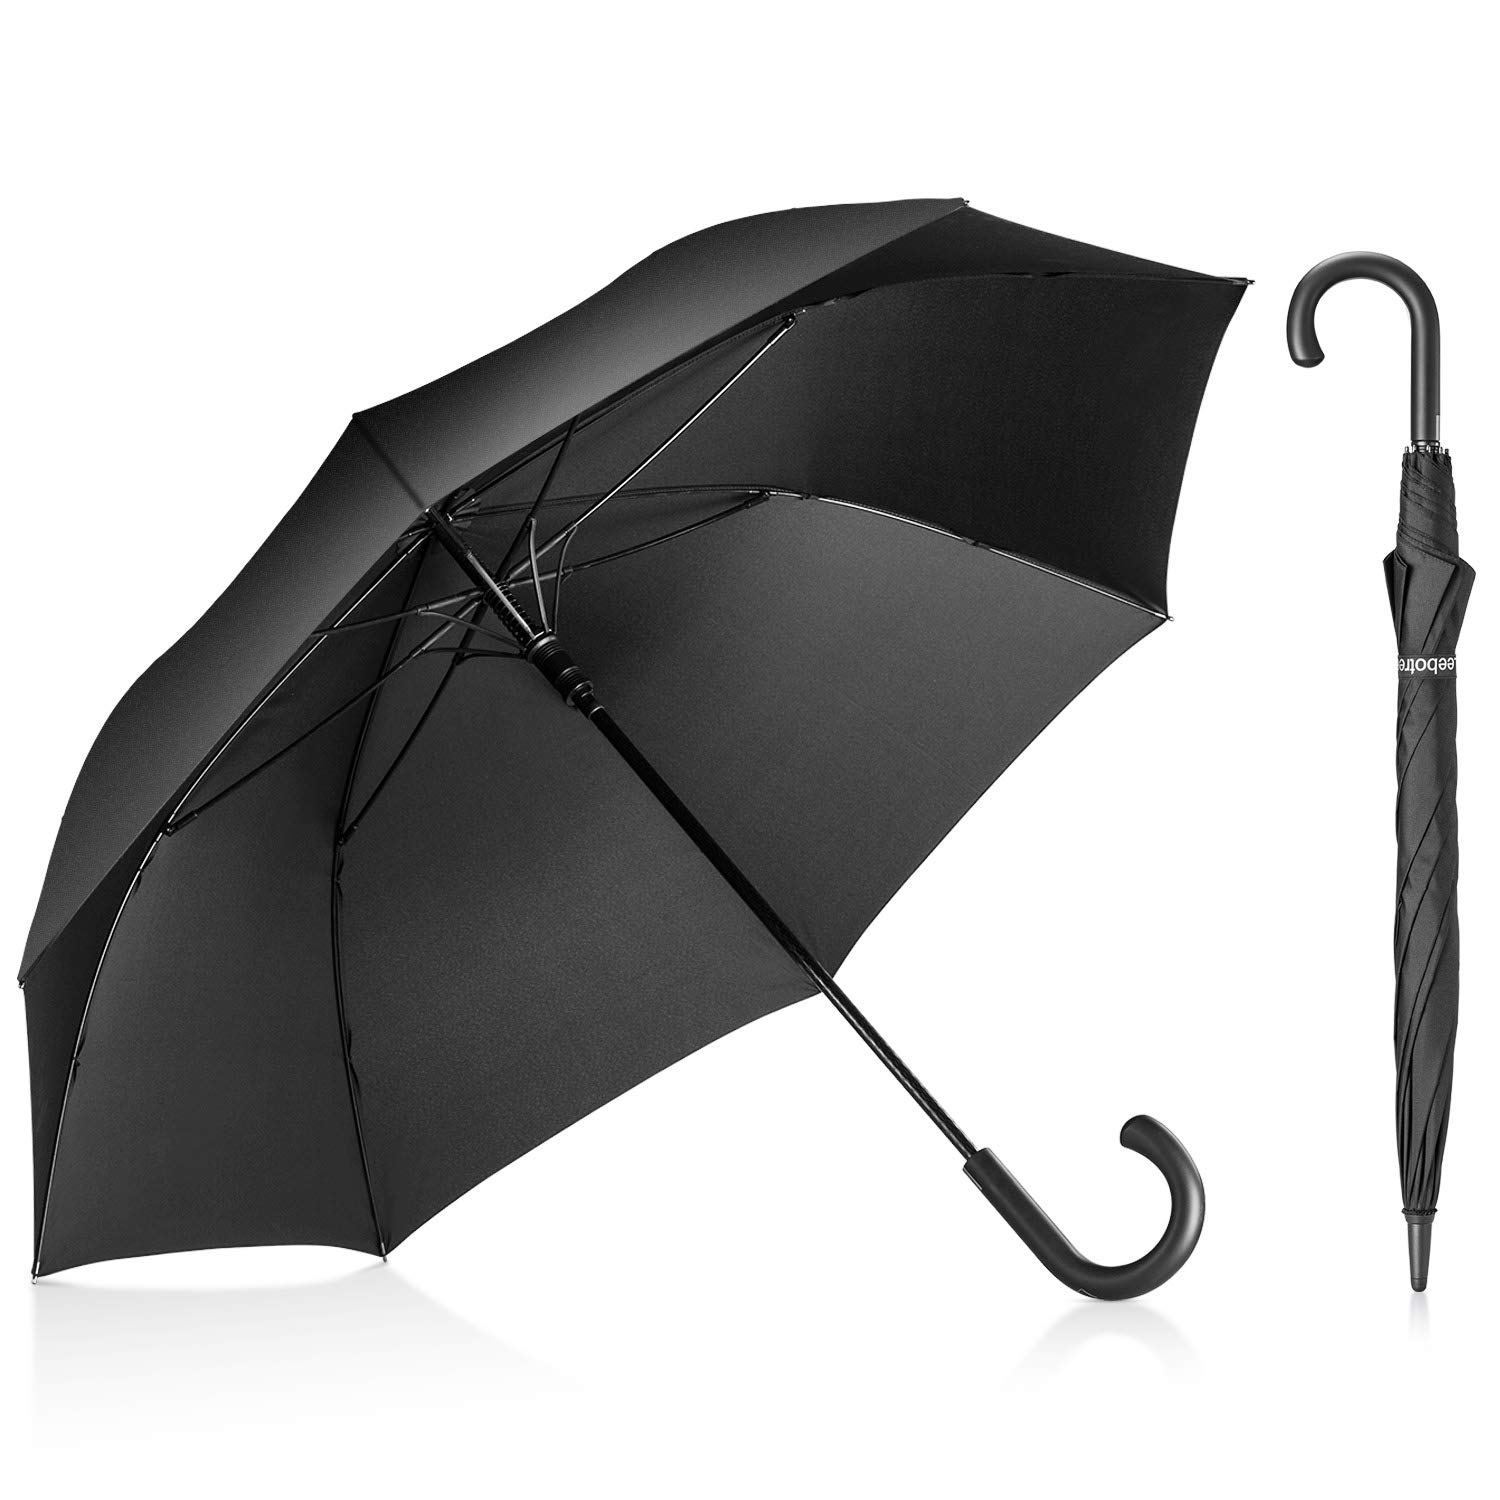 011a8f208a3a3 Leebotree Stick Umbrella, Auto Open Windproof Umbrella with 51 Inch Large  Canopy Waterproof and J